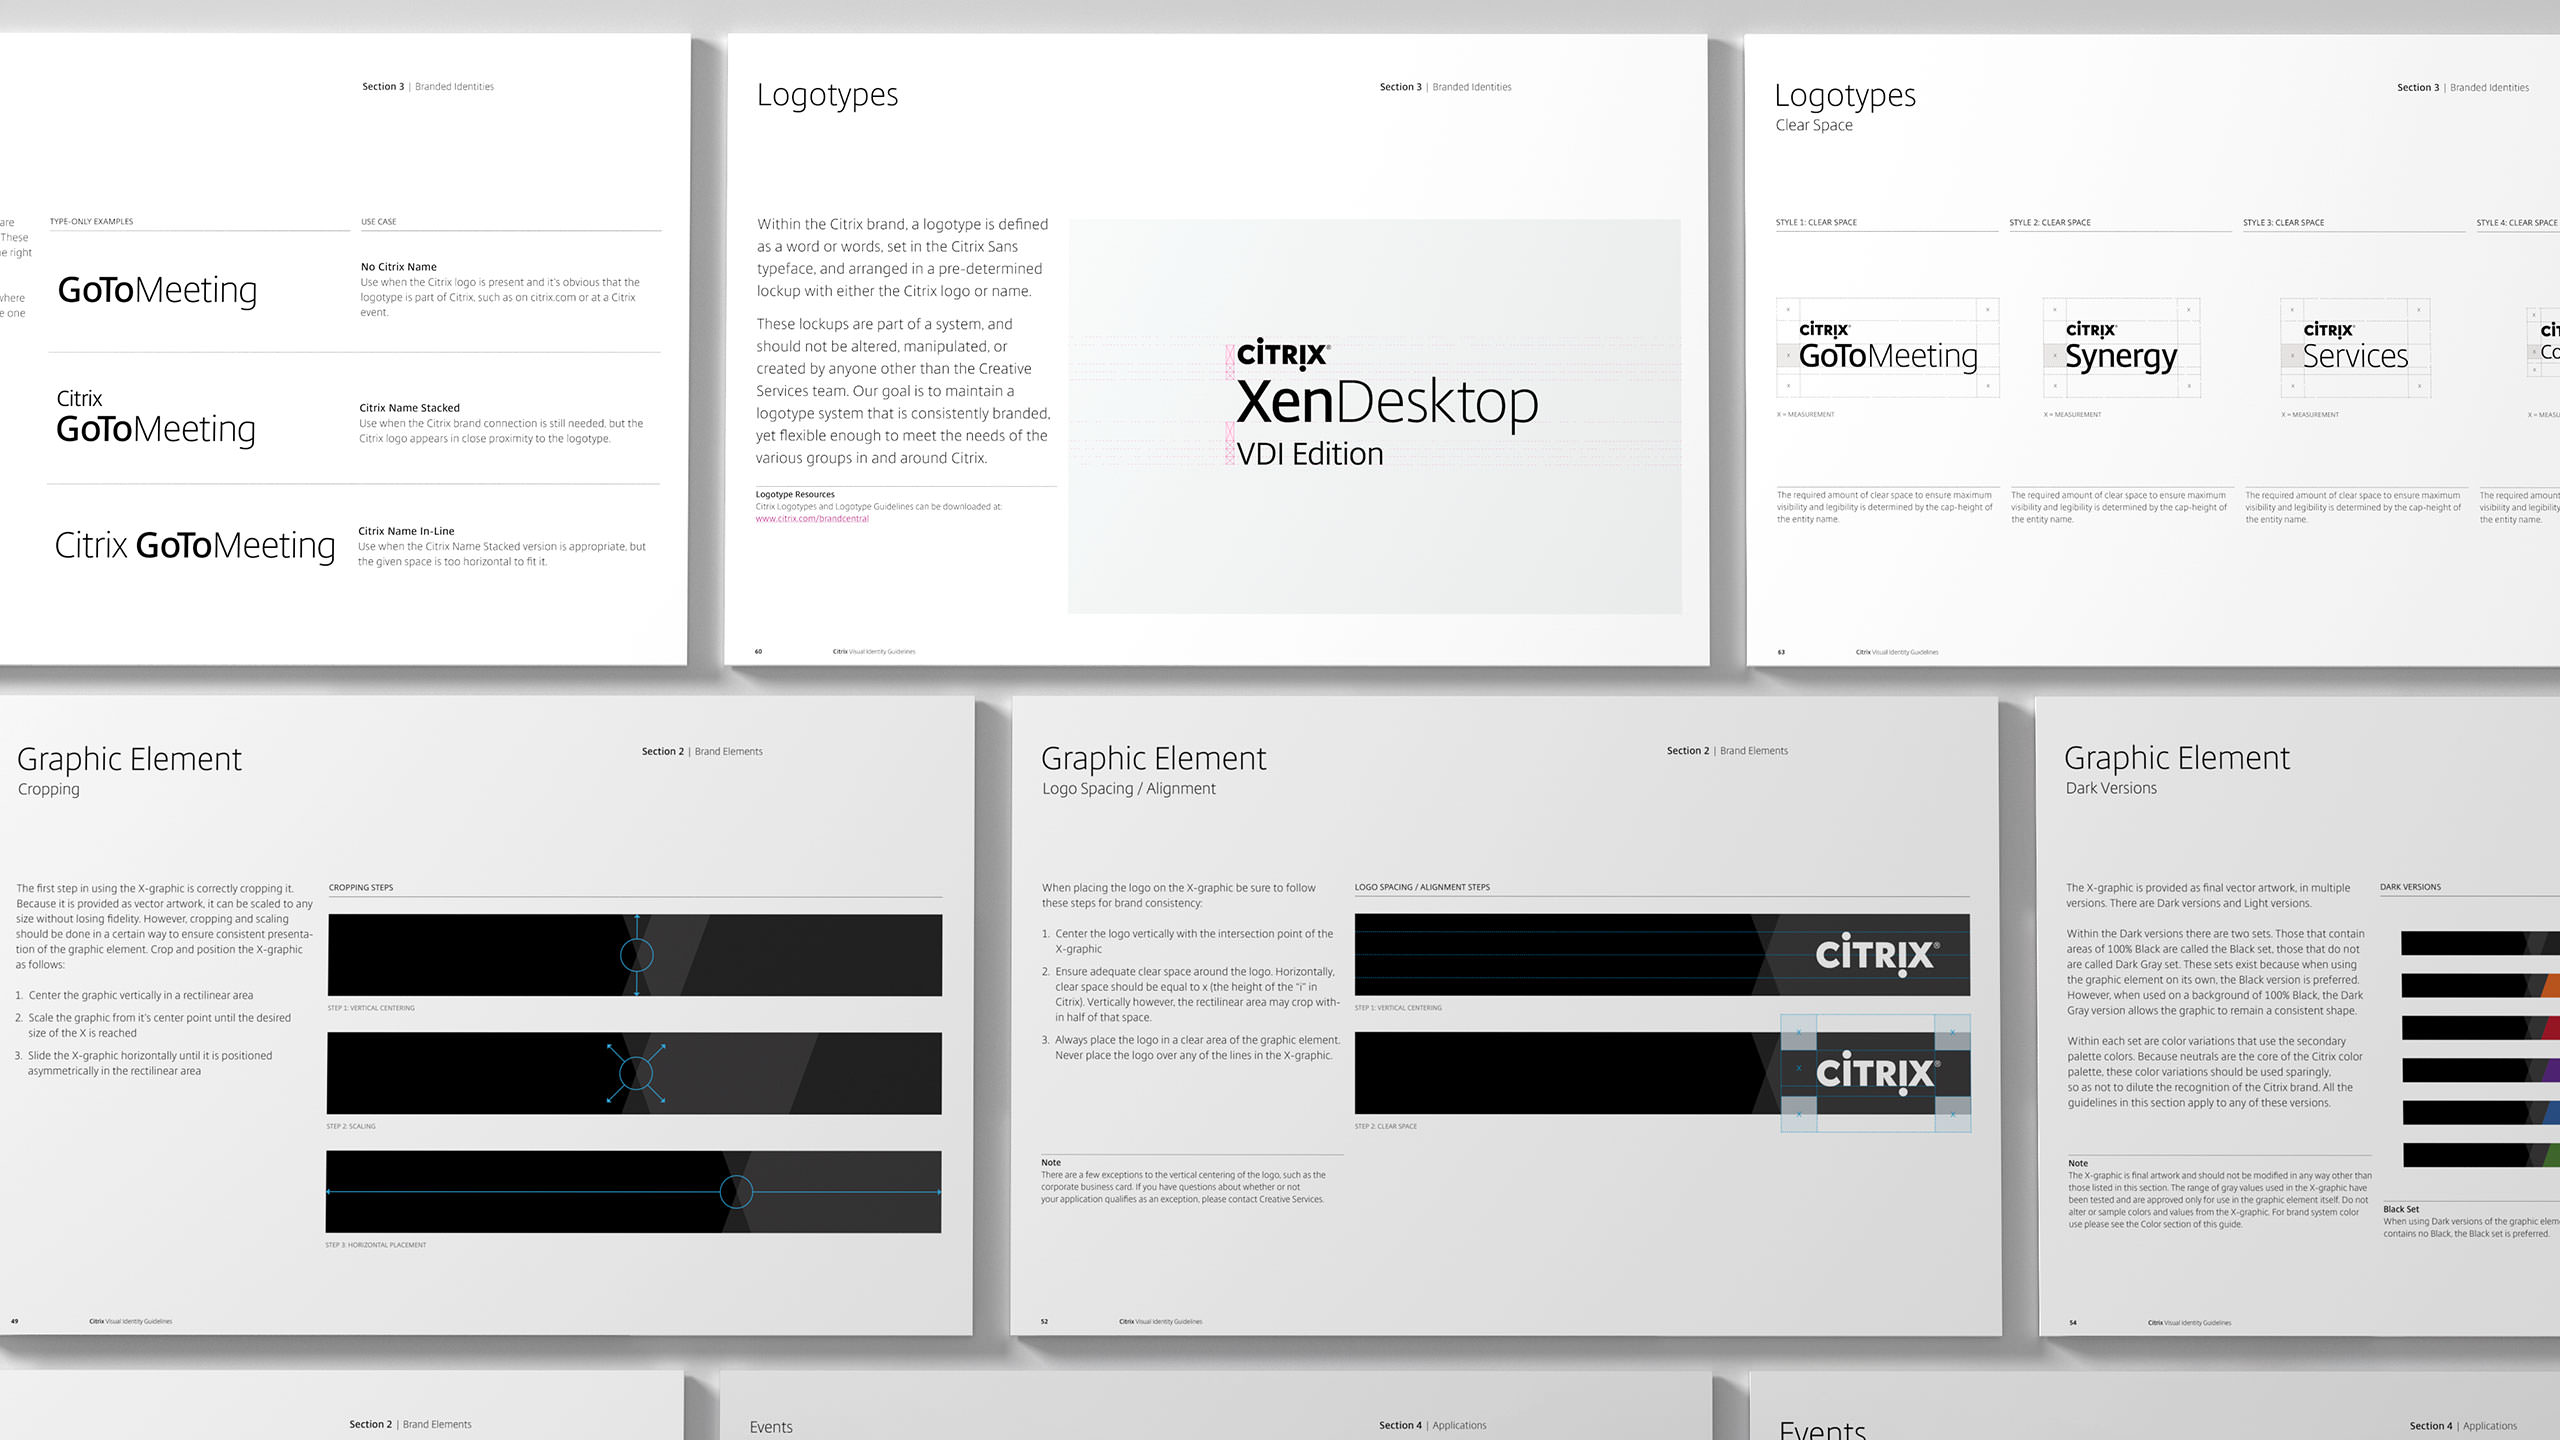 Citrix Brand Guidelines - Graphic Element and Logotypes